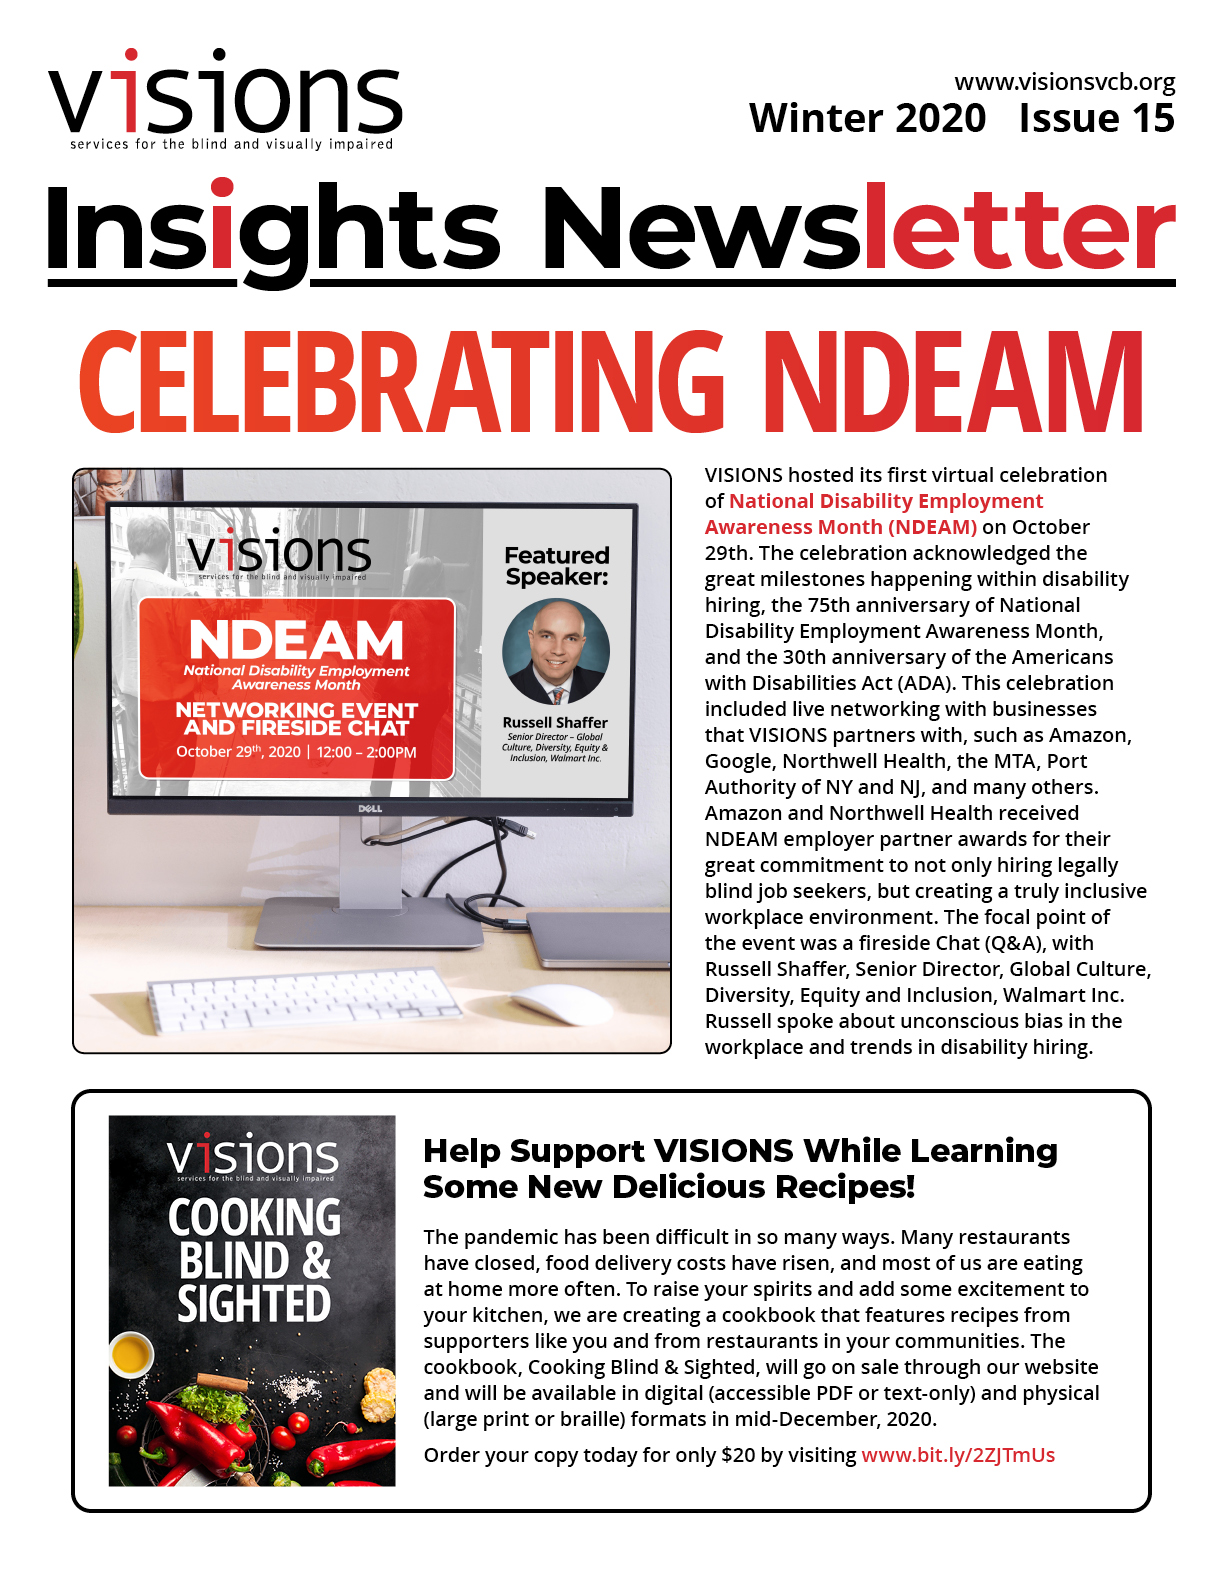 VISIONS Insights Newsletter, Winter 2020